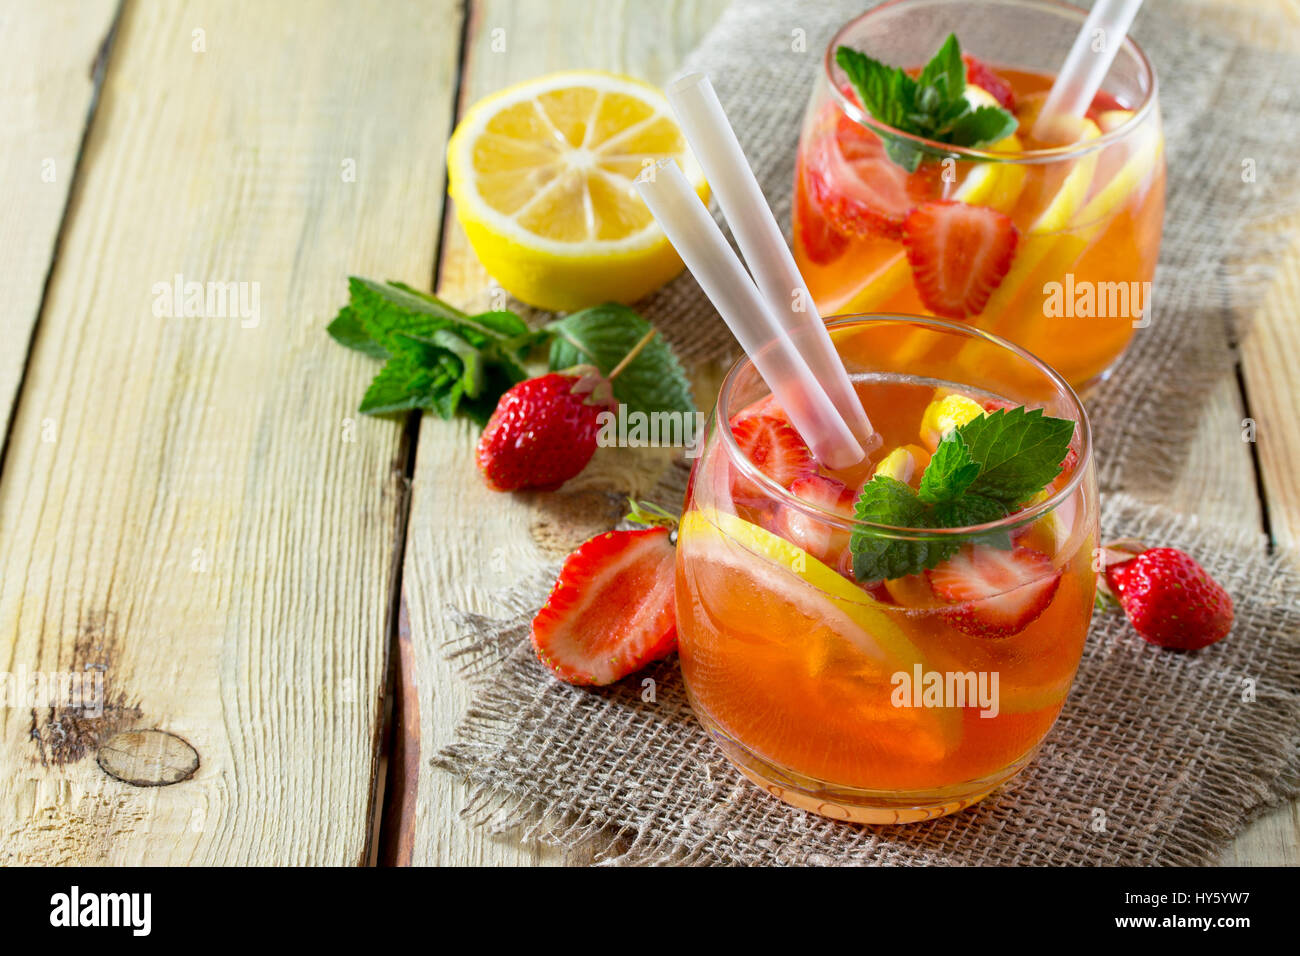 Fruit water. Refreshing summer drink with strawberries, lemon and mint. The concept of healthy and dietary nutrition. - Stock Image